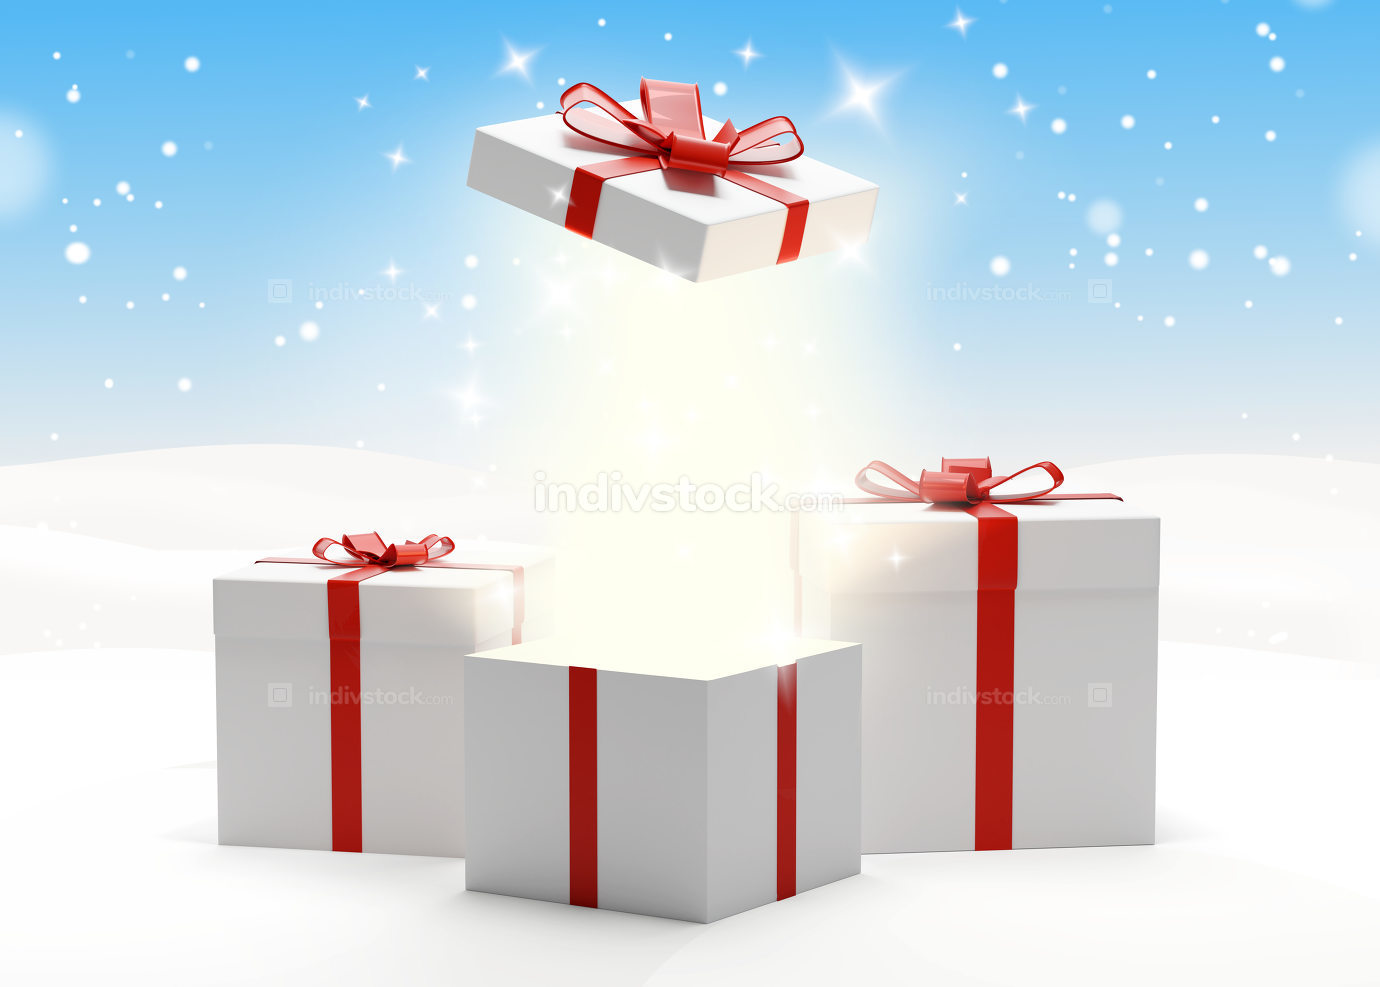 free download: gift boxes presents boxes 3d-illustration with bow and ribbon